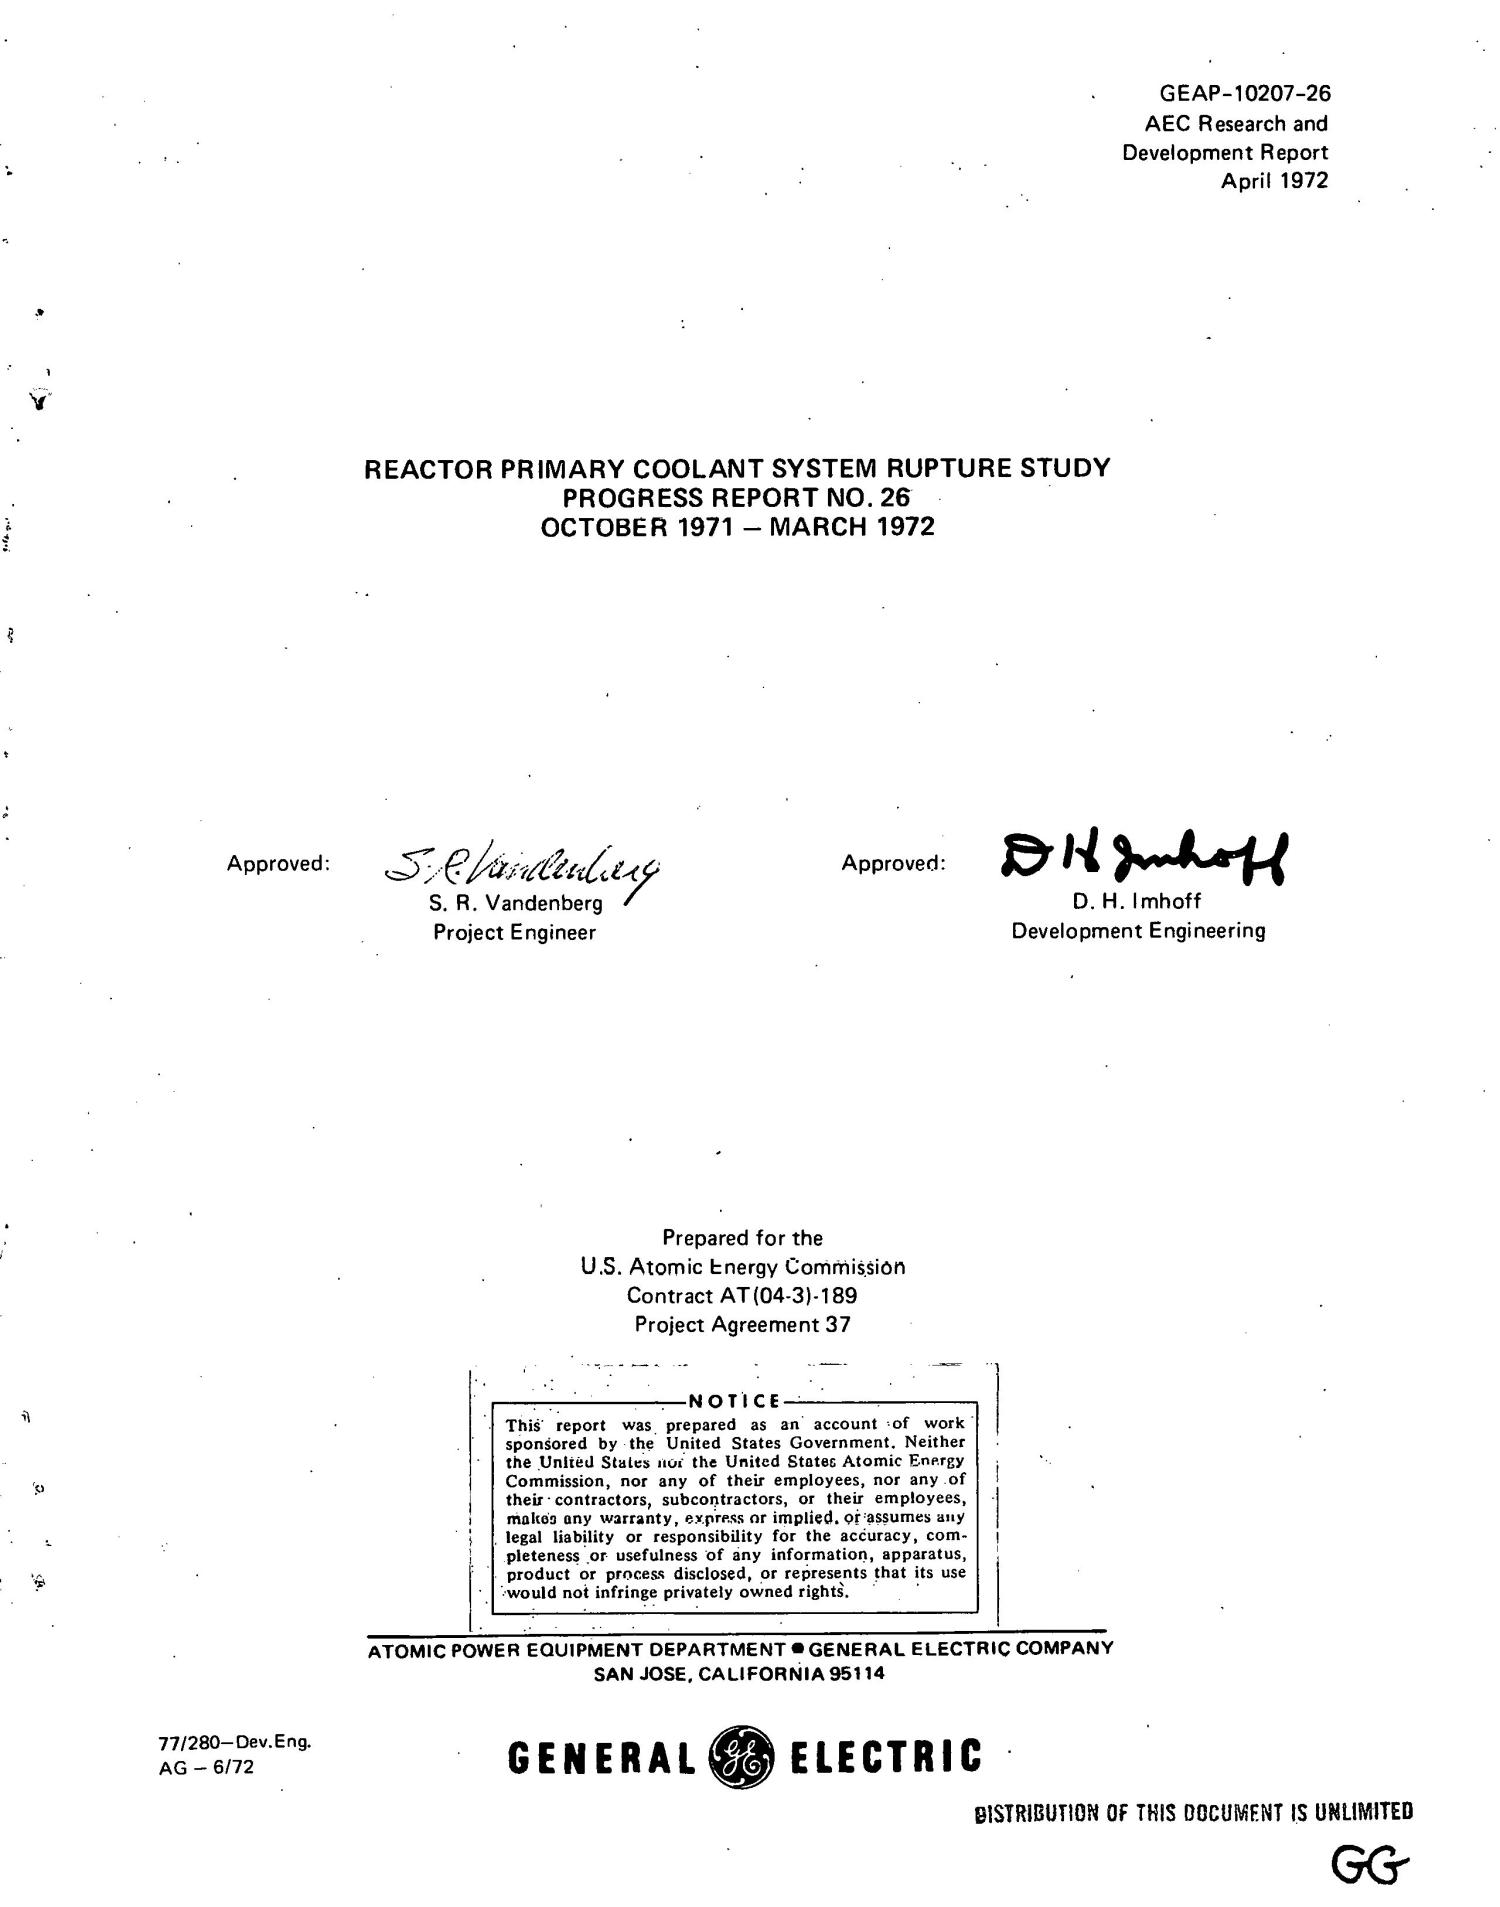 REACTOR PRIMARY COOLANT SYSTEM RUPTURE STUDY. Progress Report No. 26, October 1971--March 1972.                                                                                                      [Sequence #]: 4 of 80